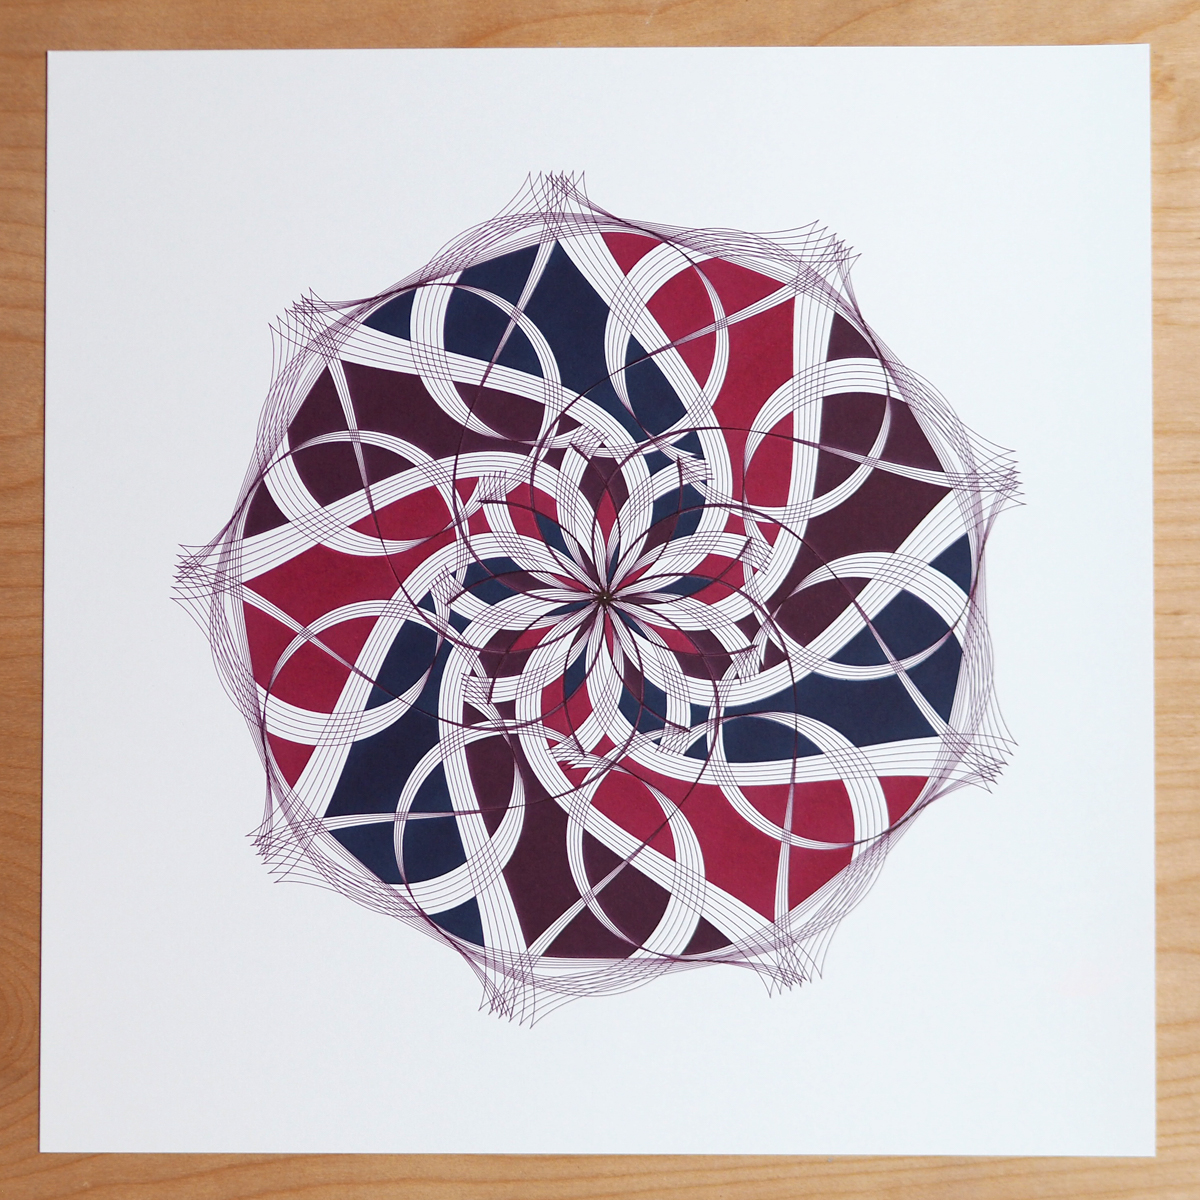 deep red and blue design with white space ribbons